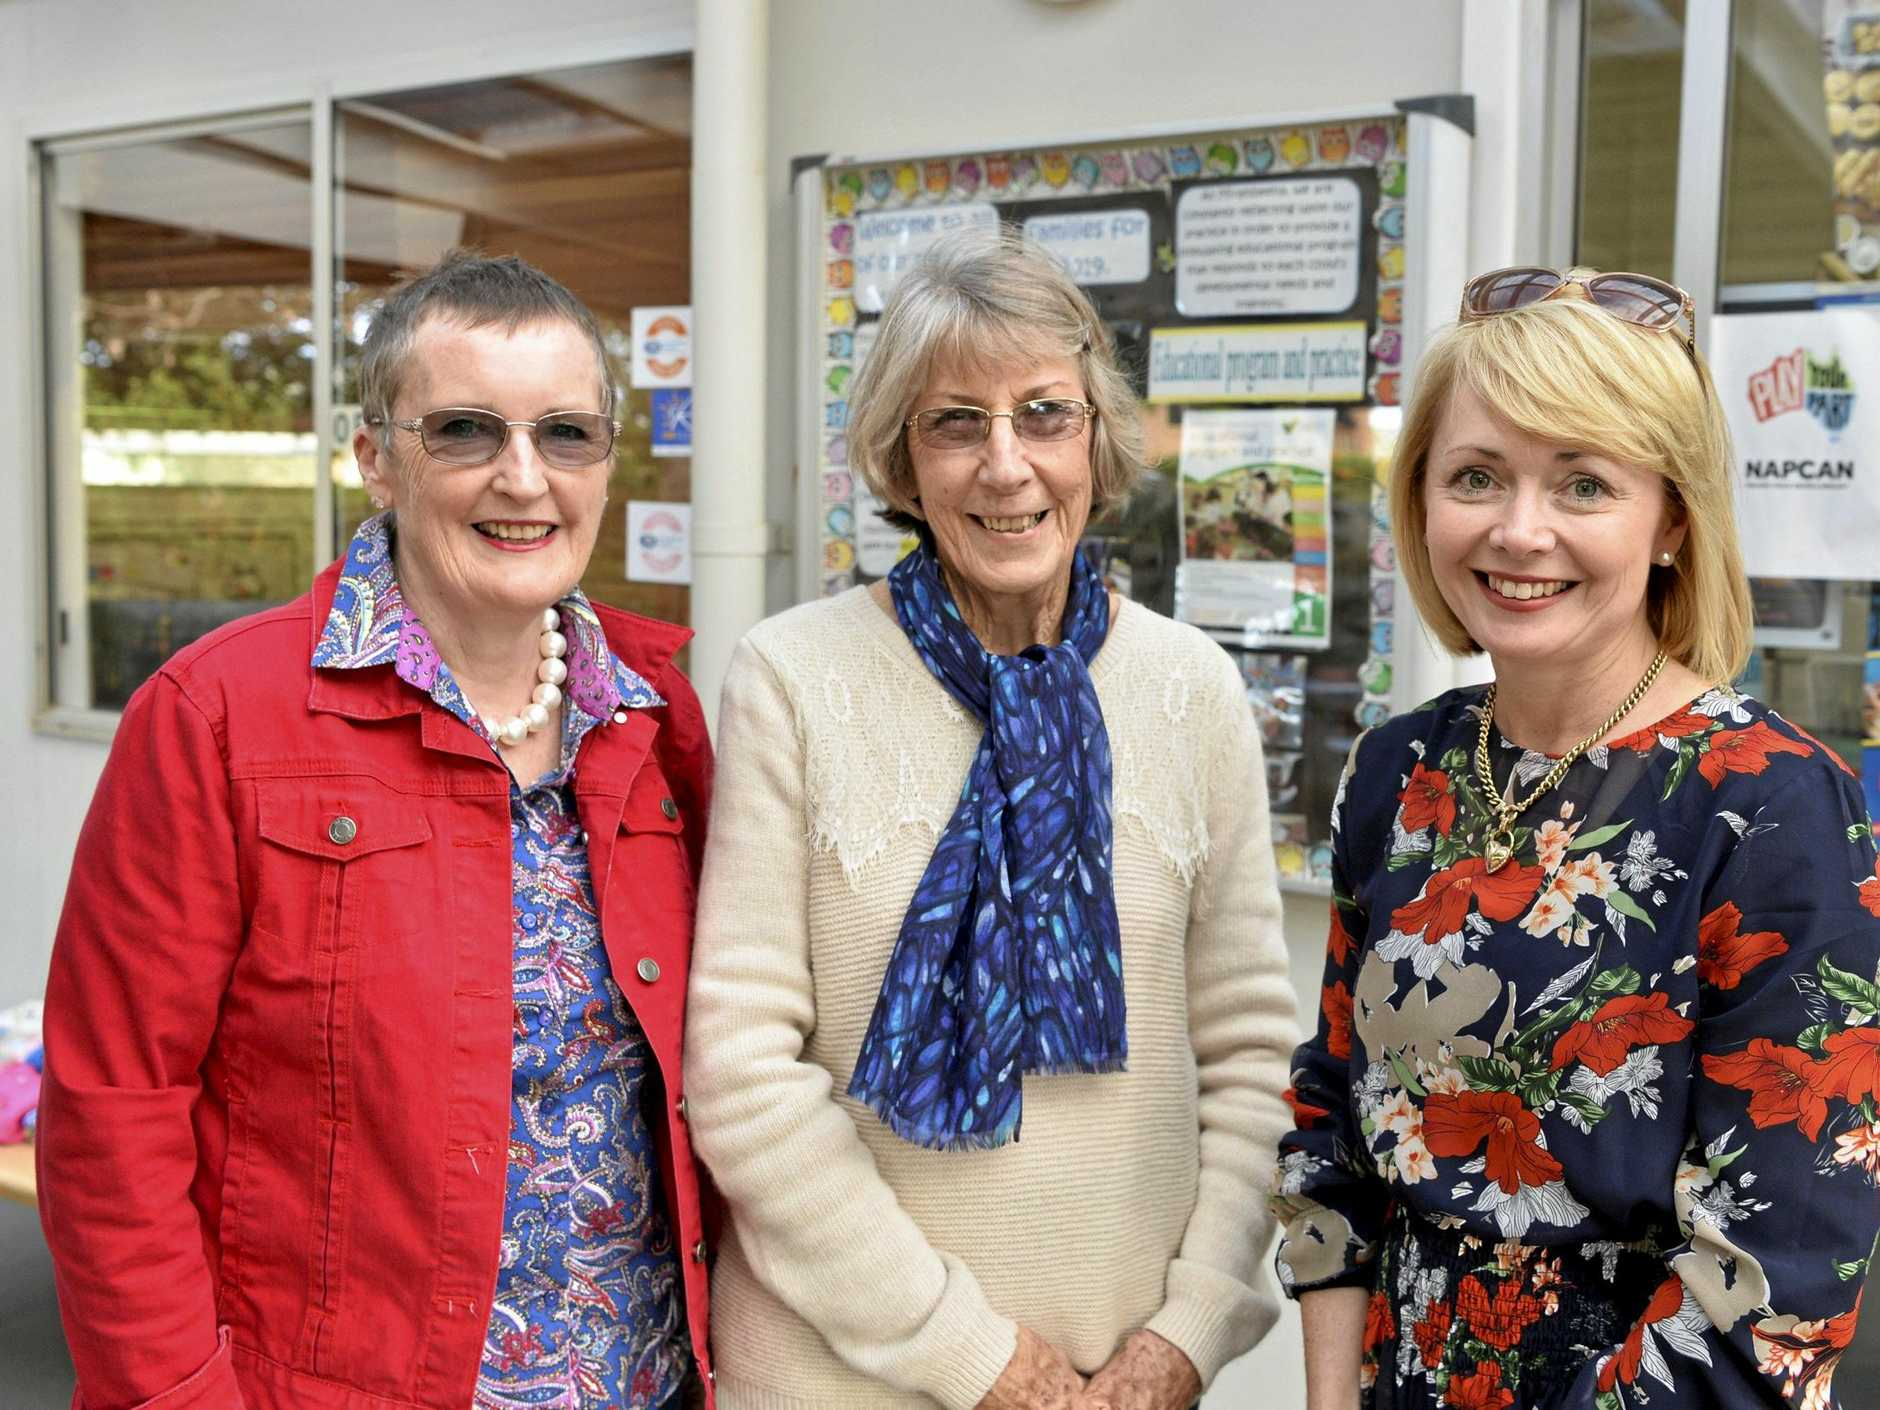 Returning to celebrate are former teachers of Mirambeena Children's Centre (from left) Mary Dolphin, Jenny Newman and Lisa McDonald.